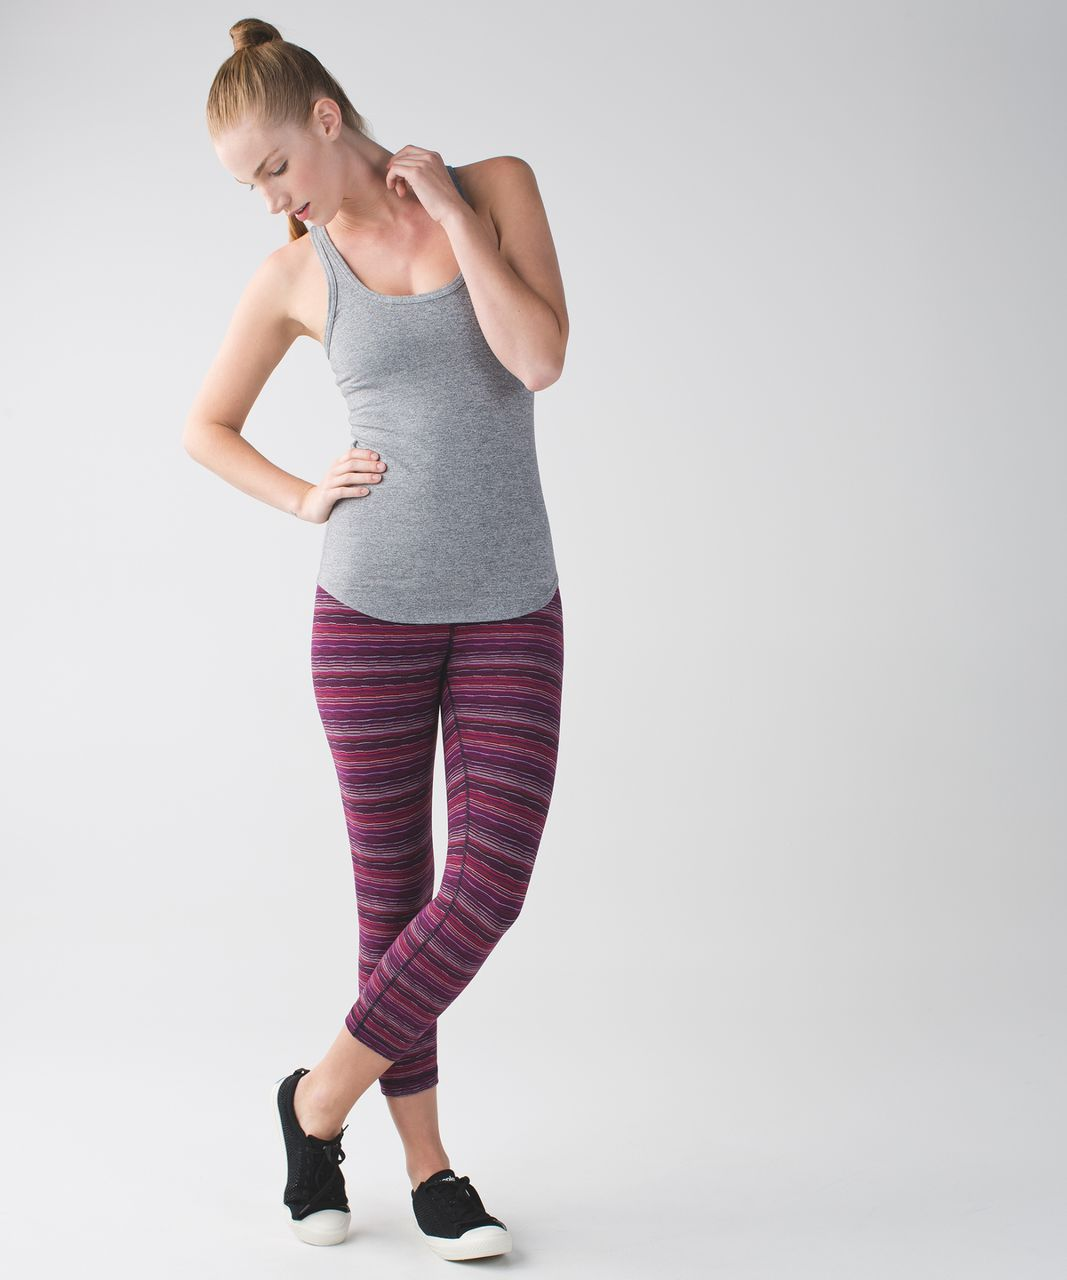 Lululemon Wunder Under Crop (Hi-Rise) - Space Dye Twist Regal Plum Alarming